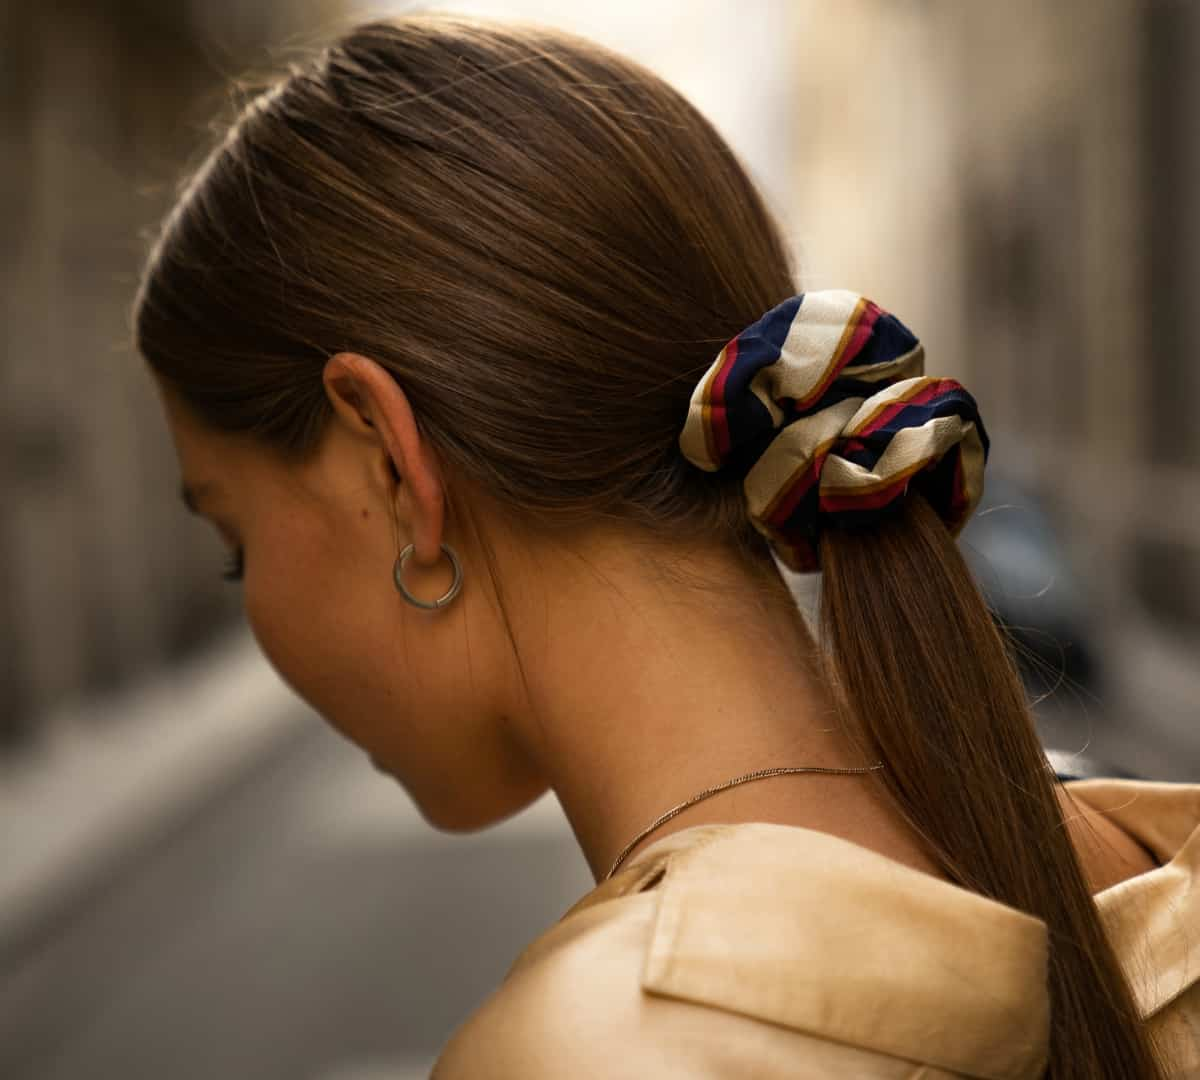 Wear your hair in a ponytail